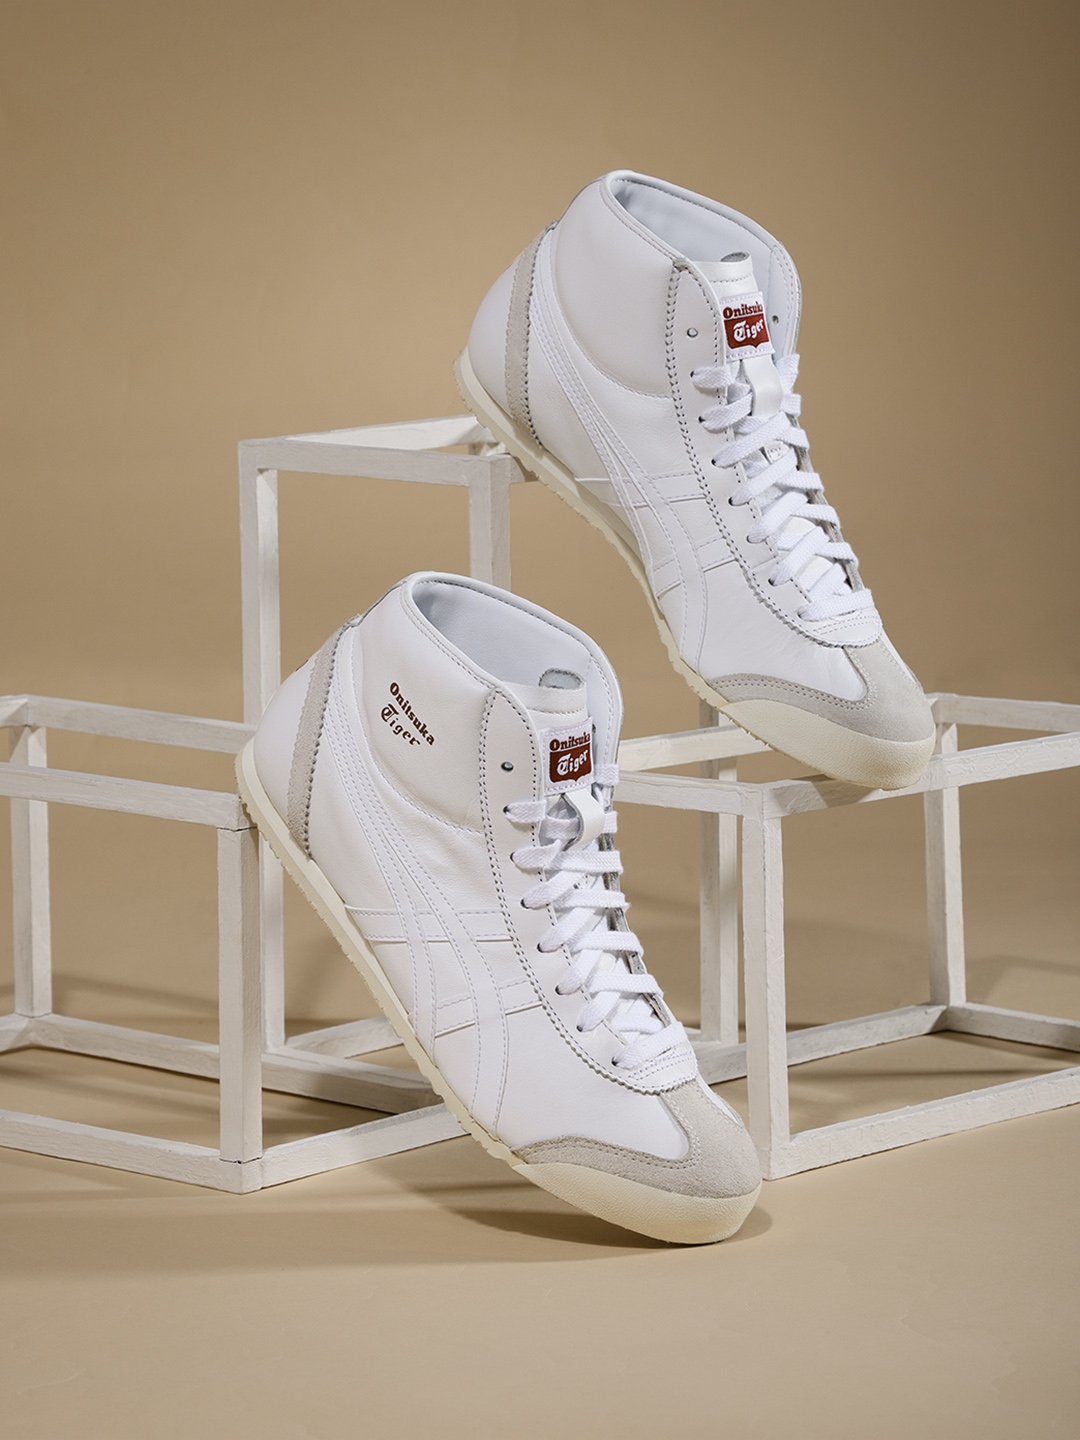 the latest cbeff 5b647 Onitsuka Tiger Mexico Mid Runner Unisex White Mid-Top Sneakers